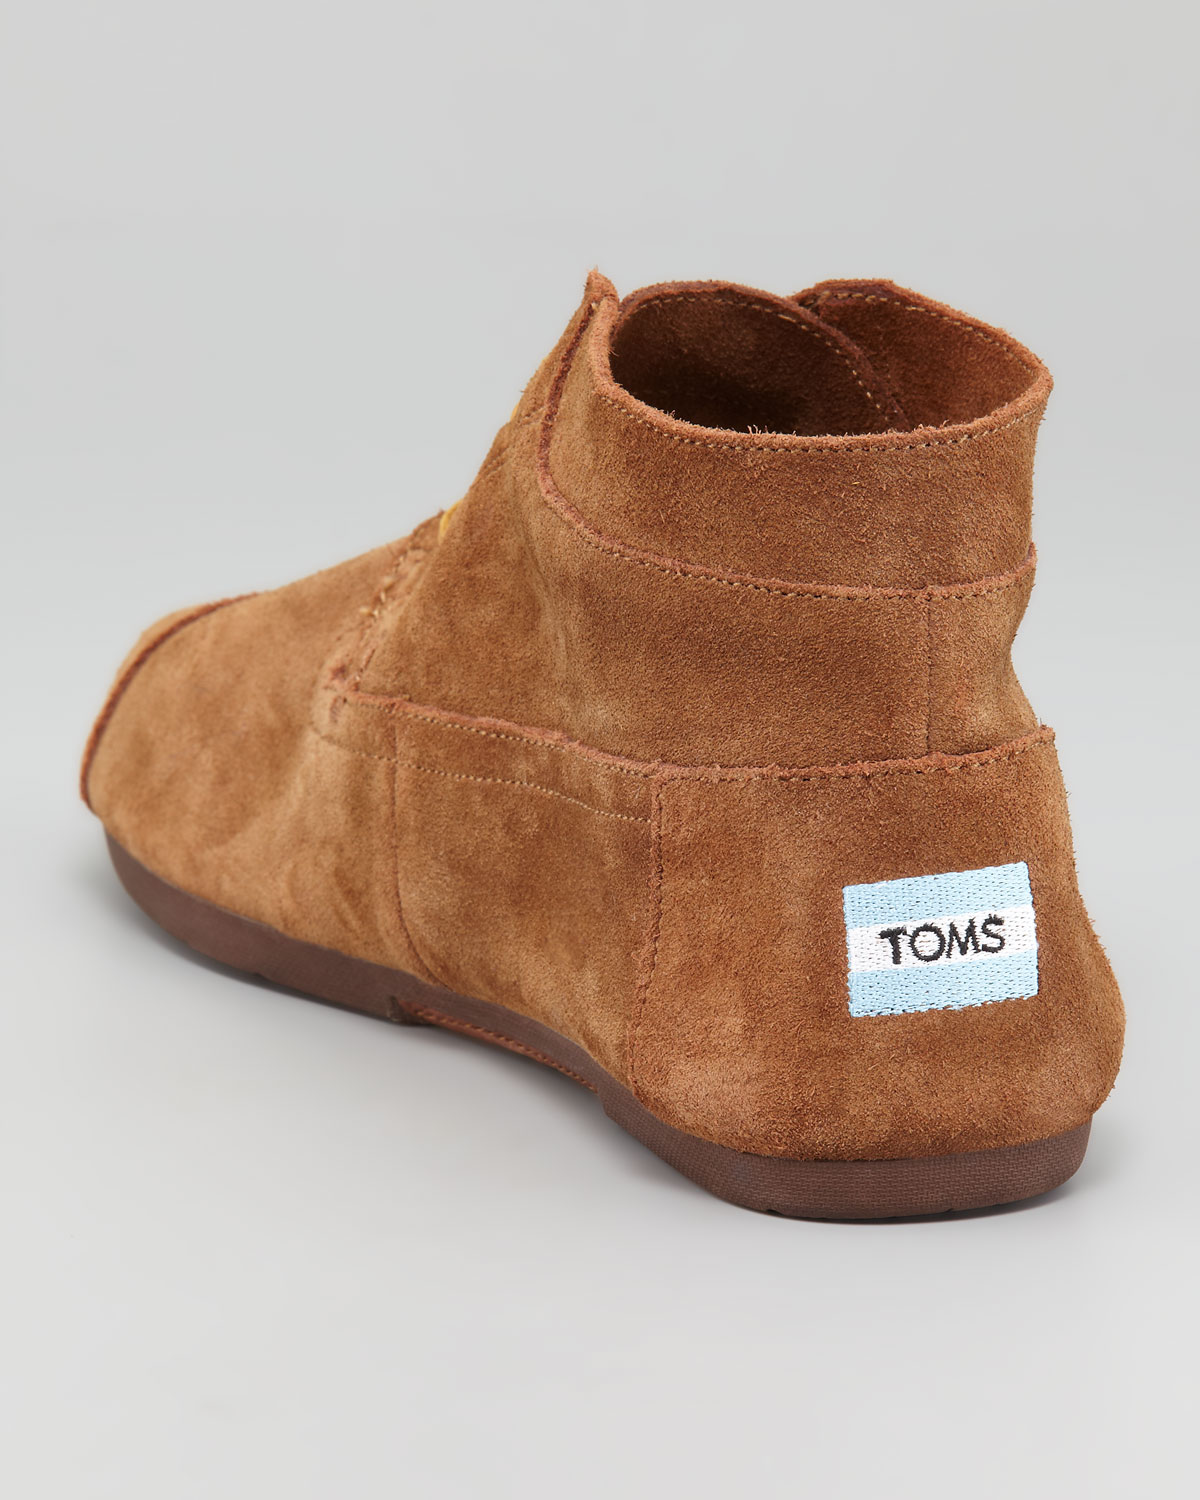 89dc618d523 Toms Suede Chukka Boot in Brown for Men